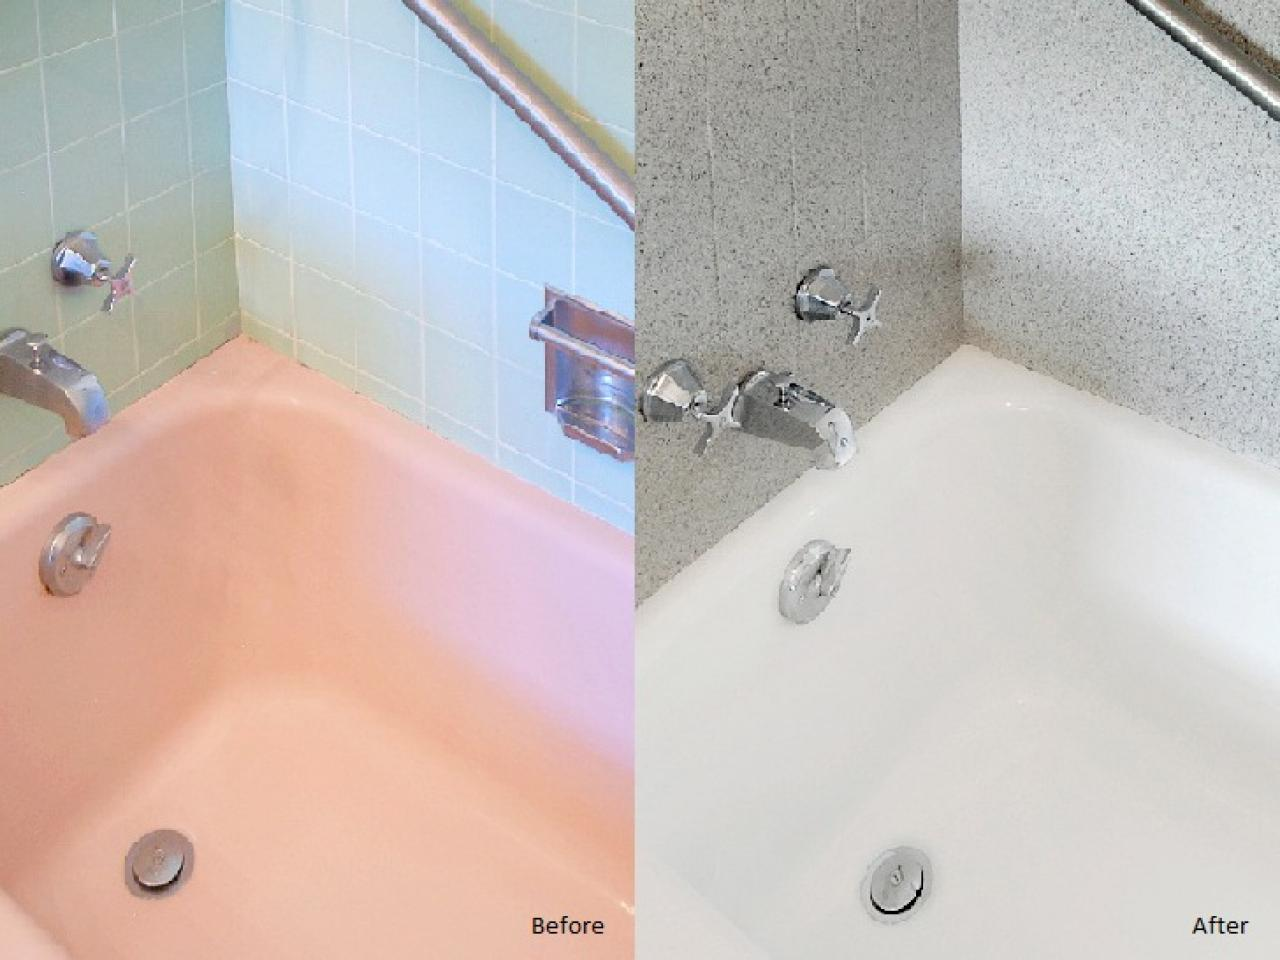 Tips From the Pros on Painting Bathtubs and Tile | DIY